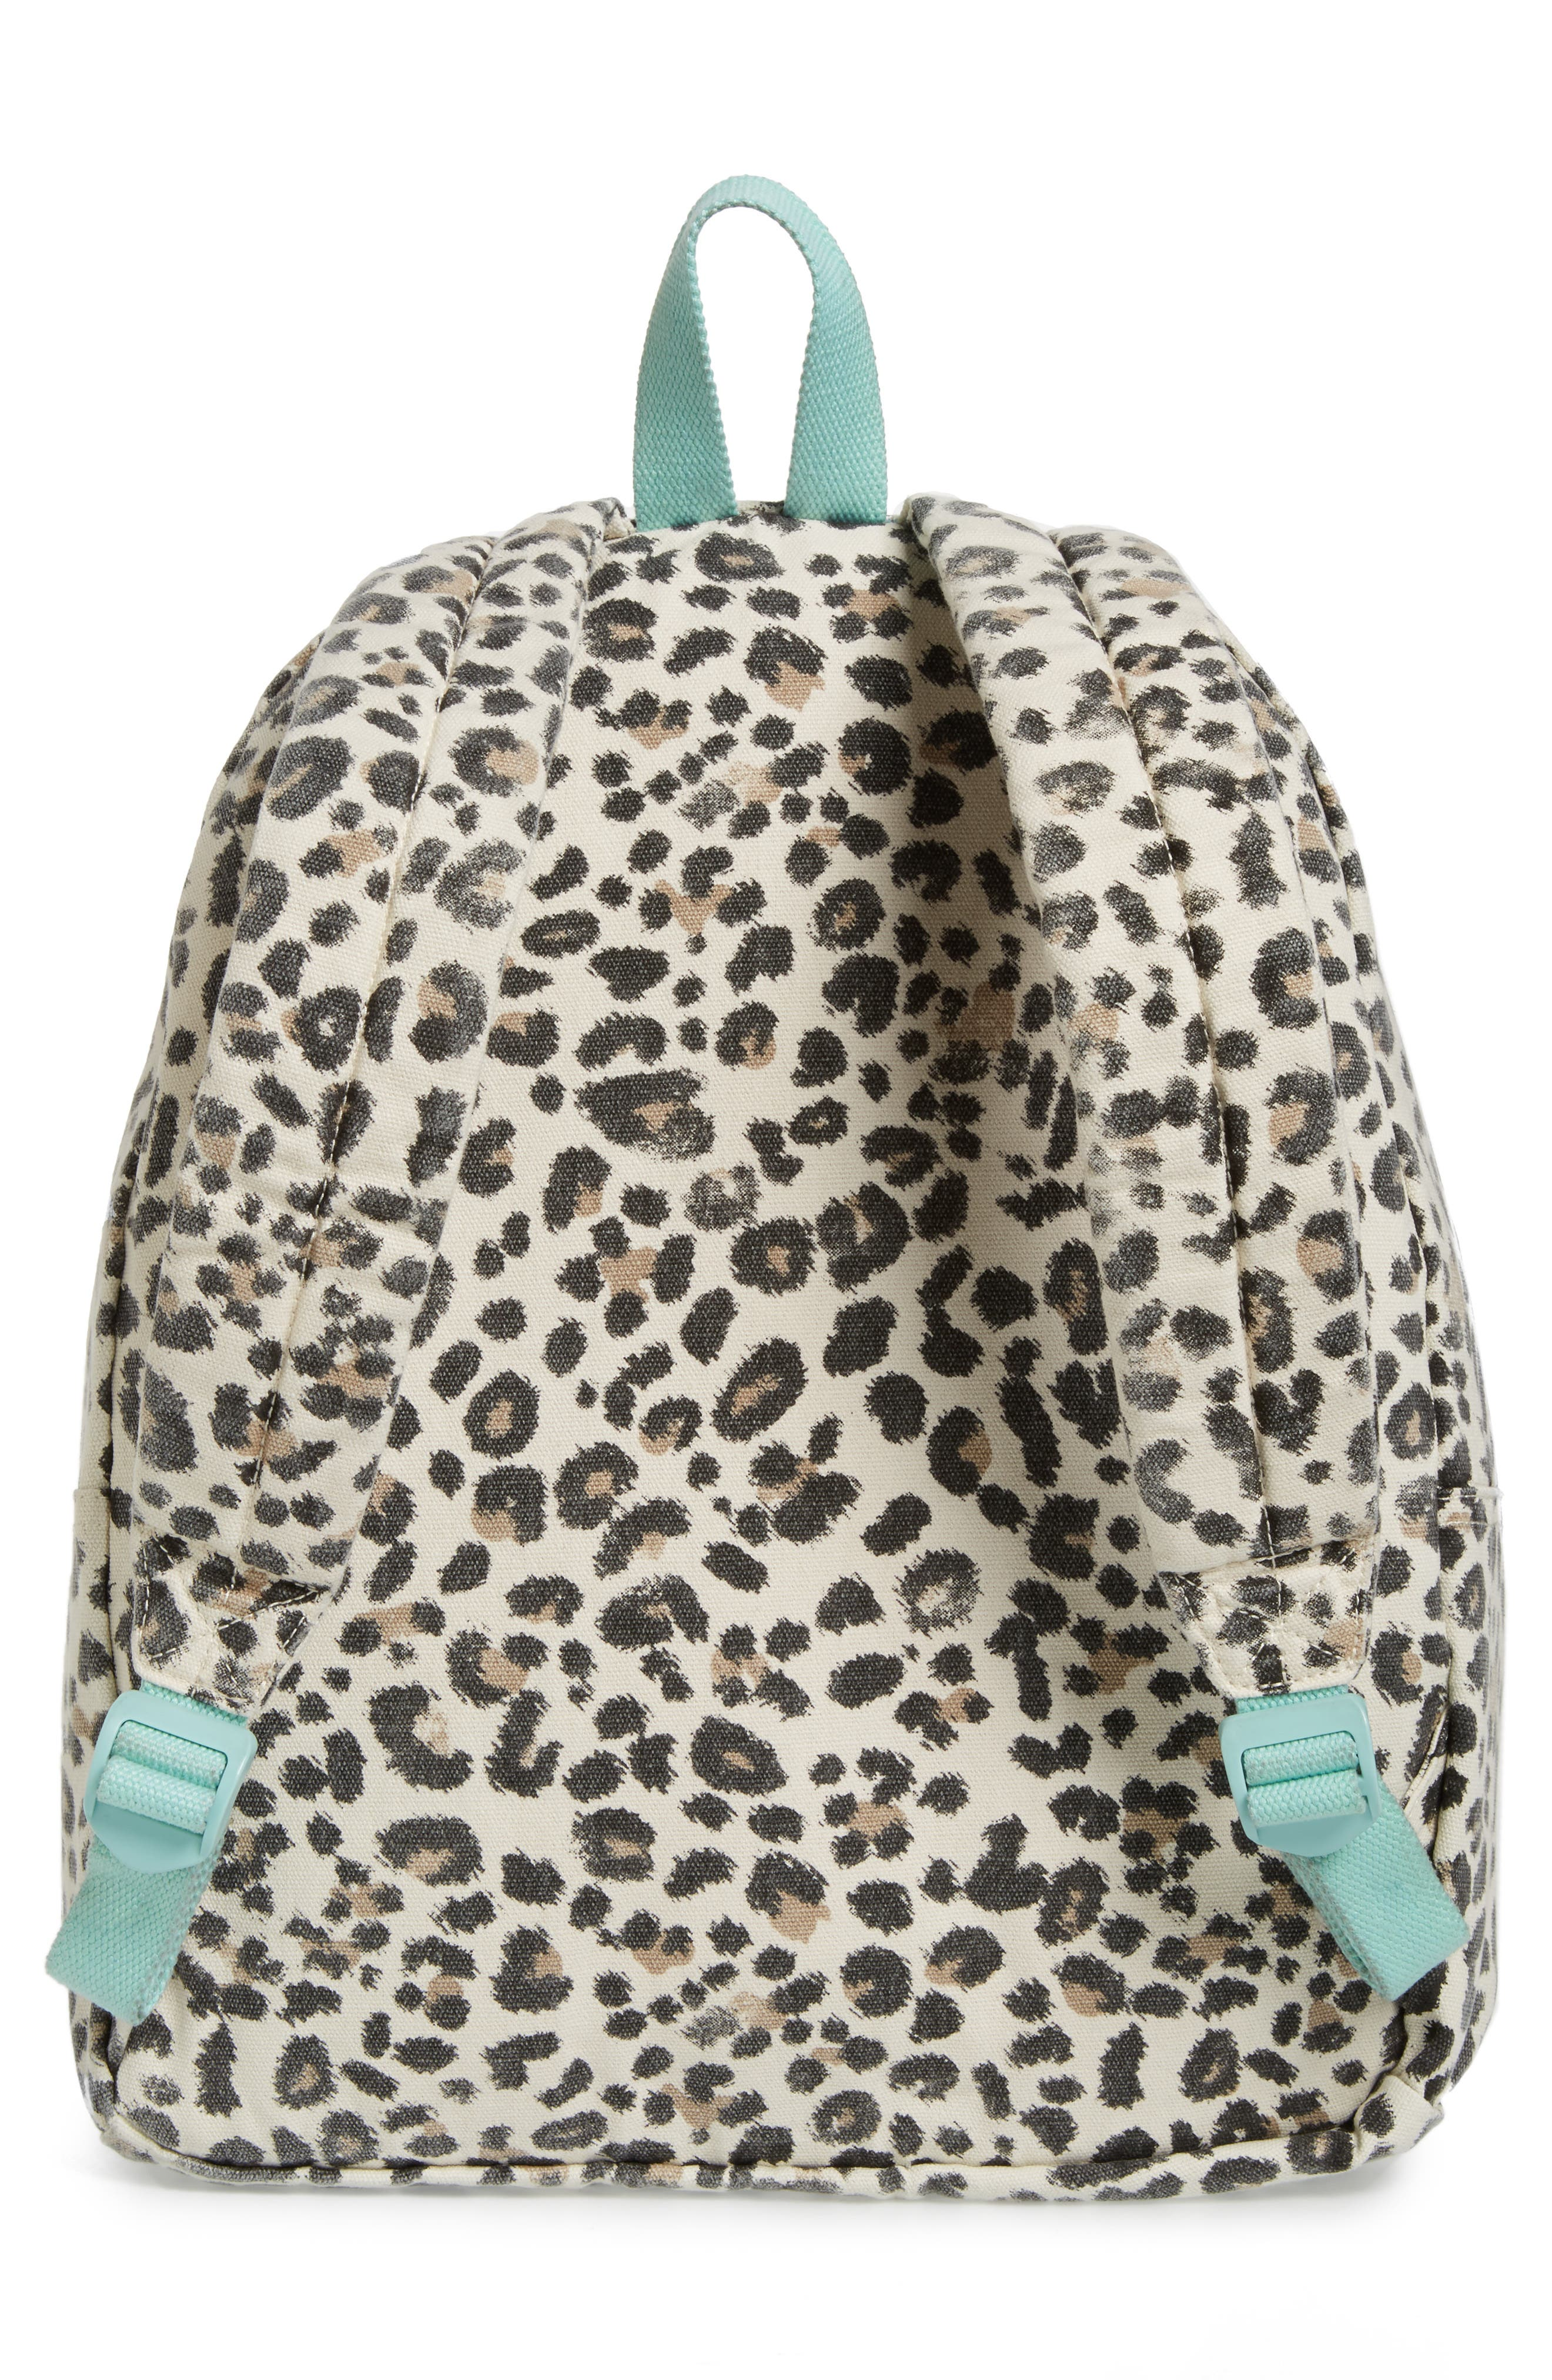 Play Date Canvas Backpack,                             Alternate thumbnail 2, color,                             004